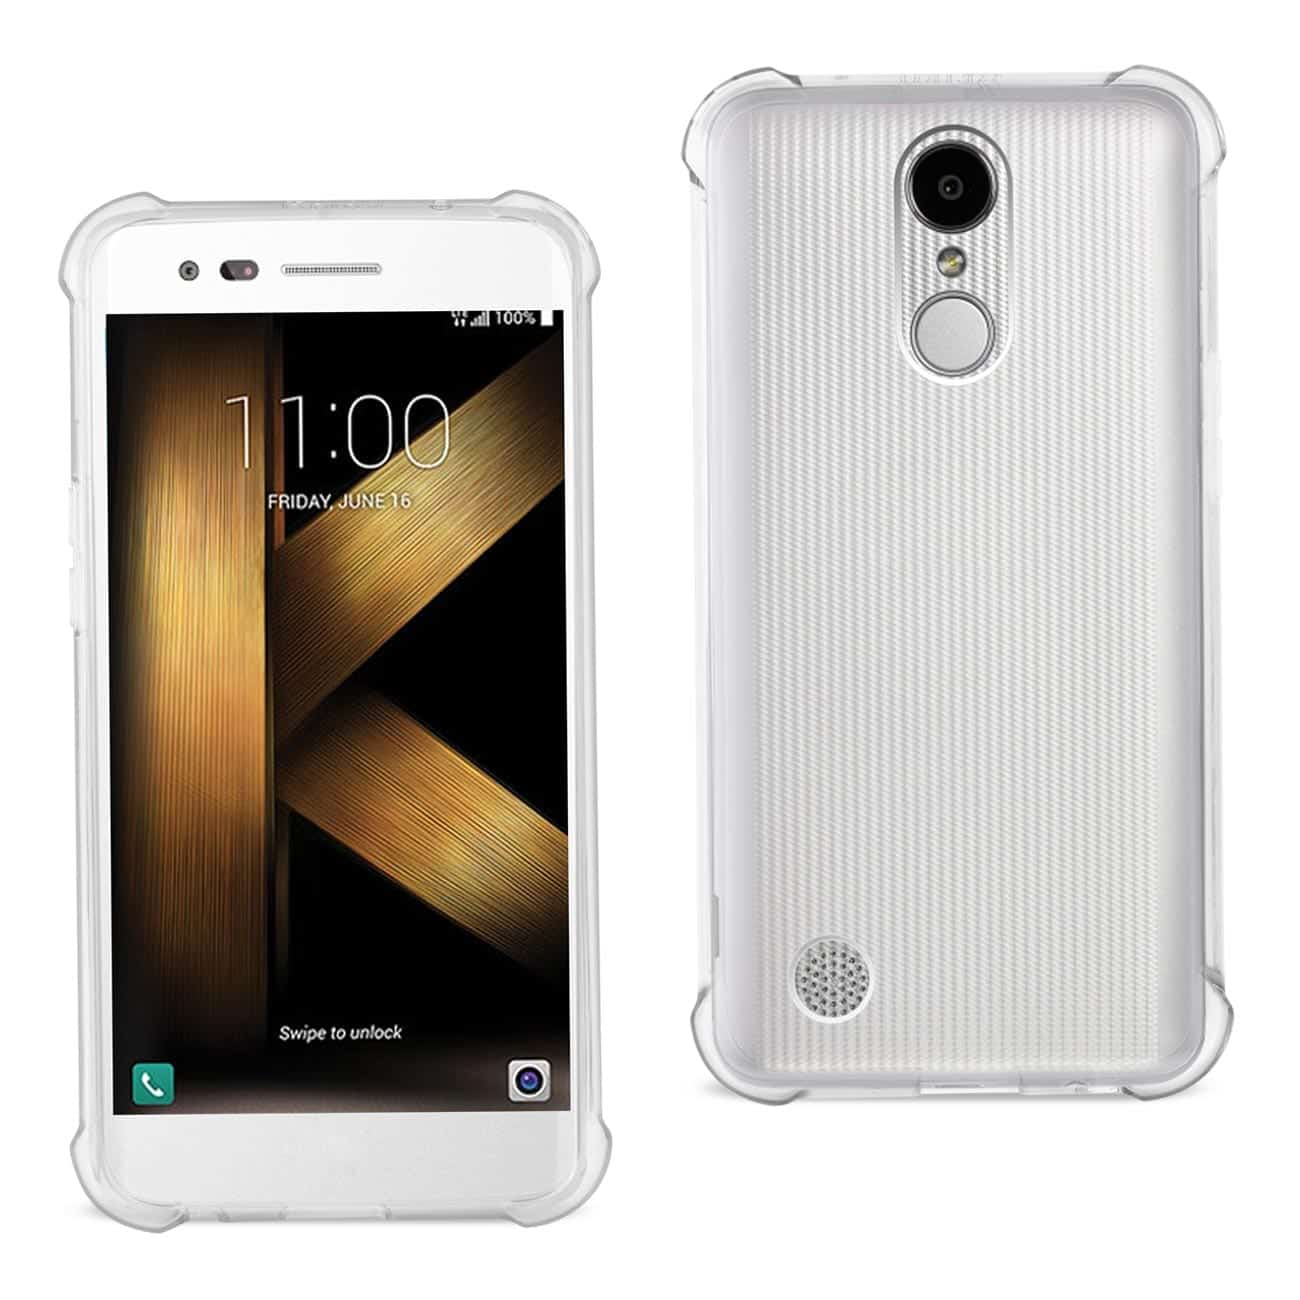 LG K20 V/ K20 PLUS CLEAR BUMPER CASE WITH AIR CUSHION PROTECTION IN CLEAR